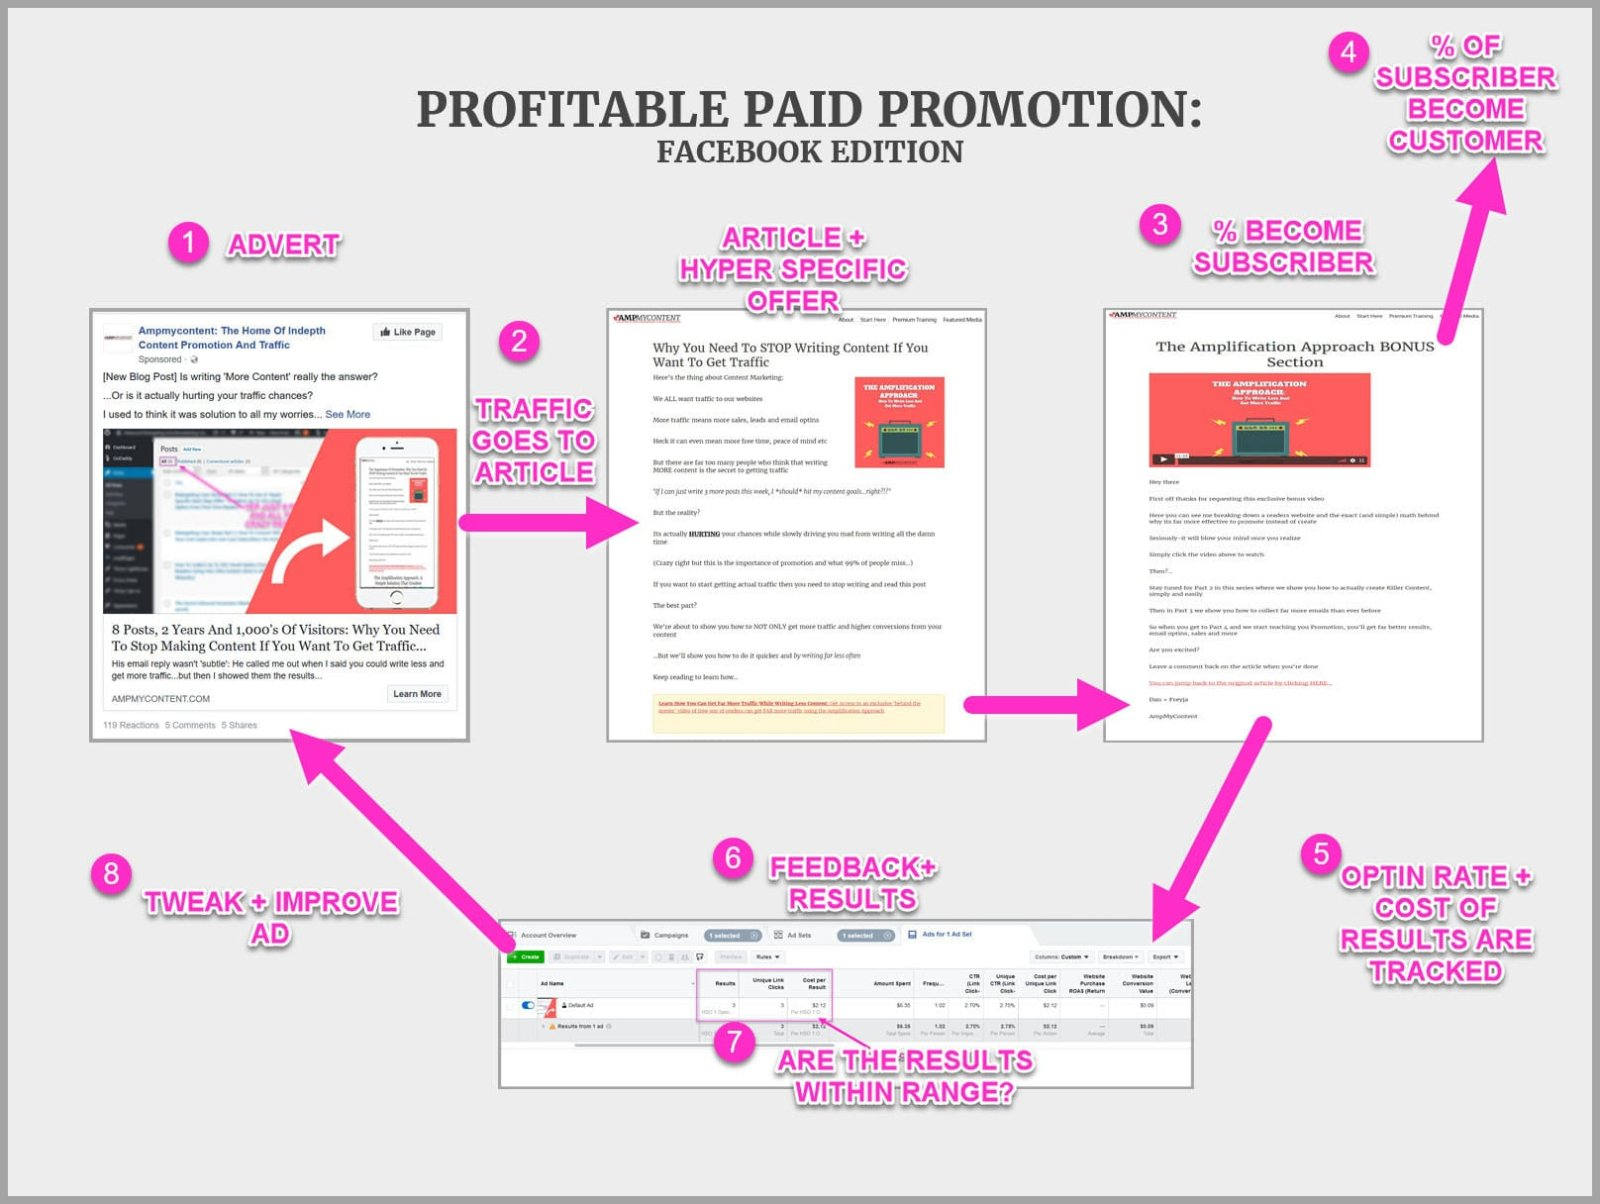 The 4 part process to profitable promoted content